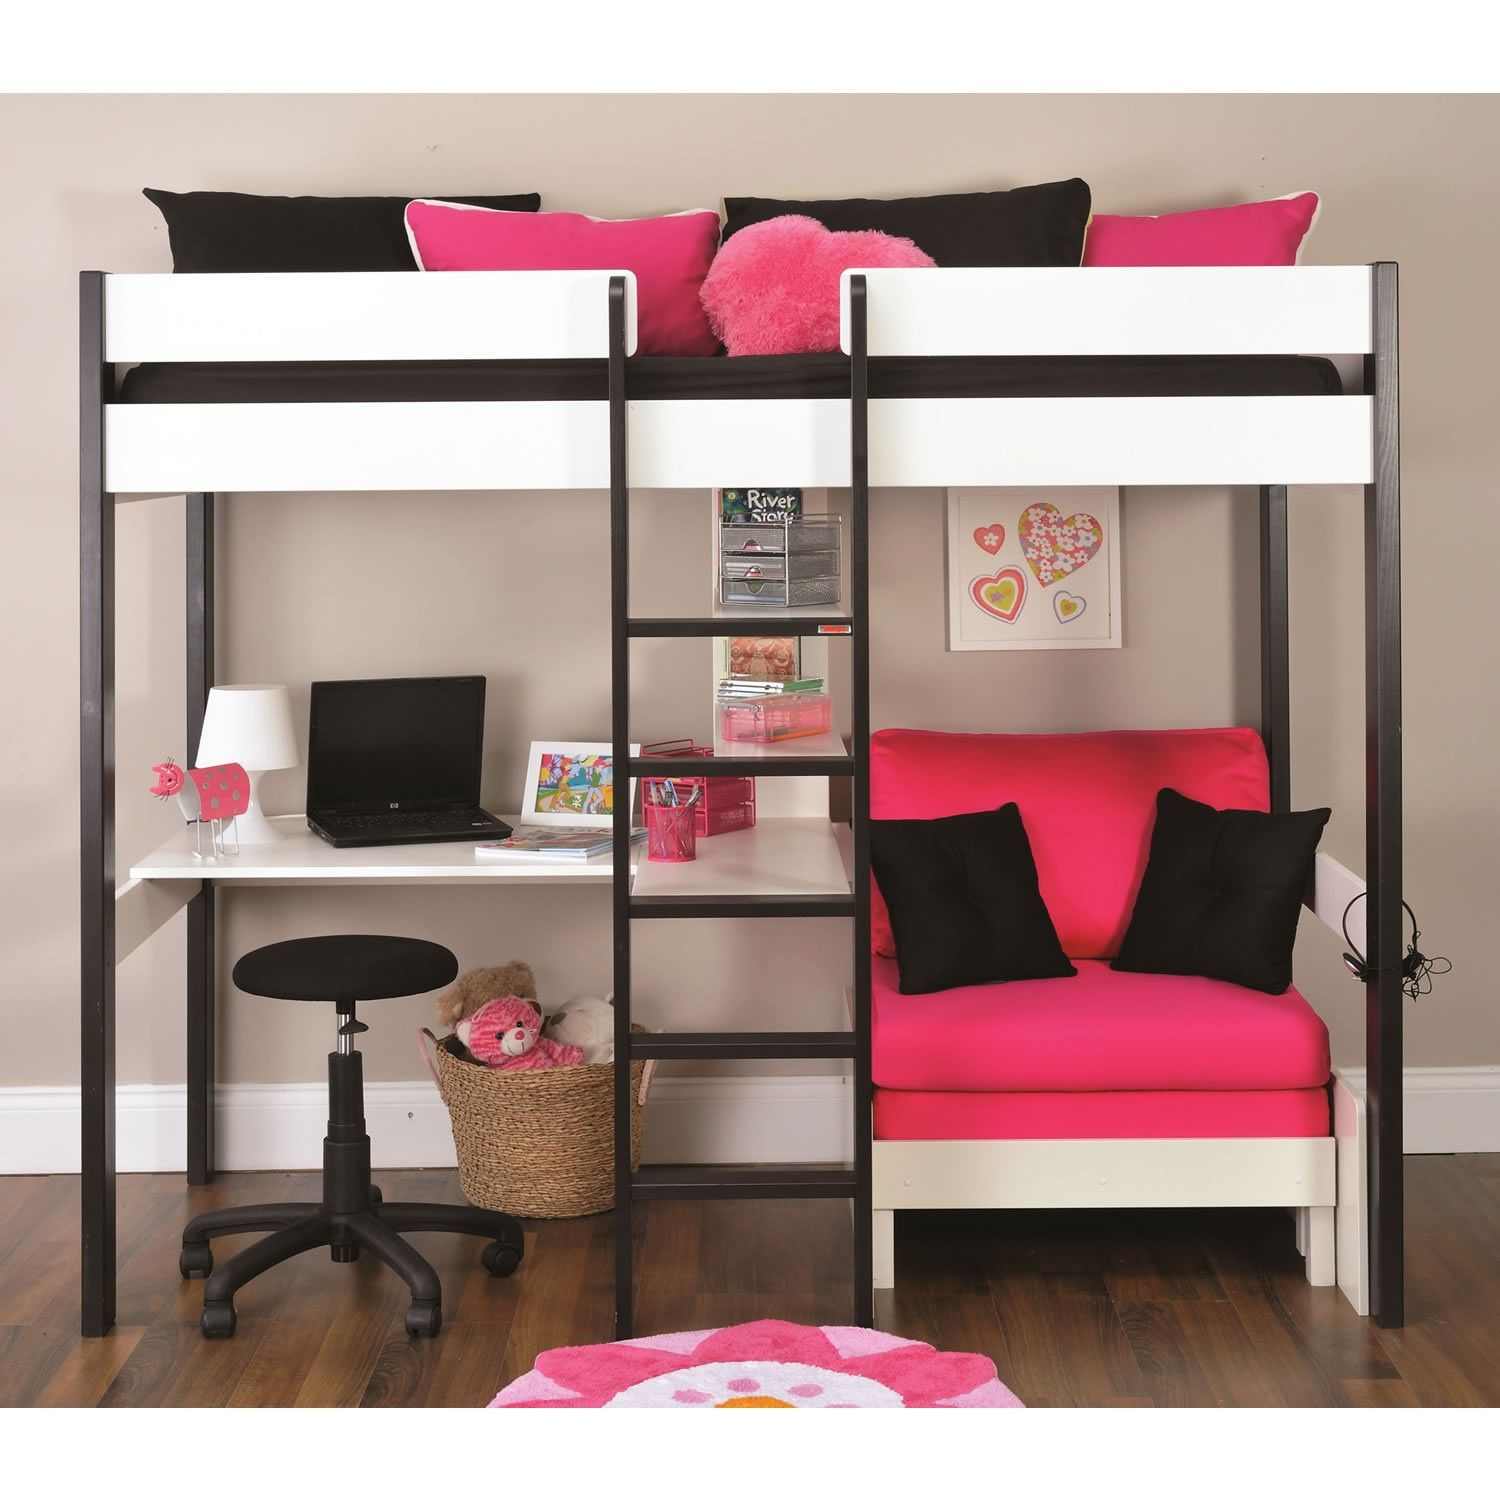 2018 Queen Bunk Bed with Couch Underneath Interior